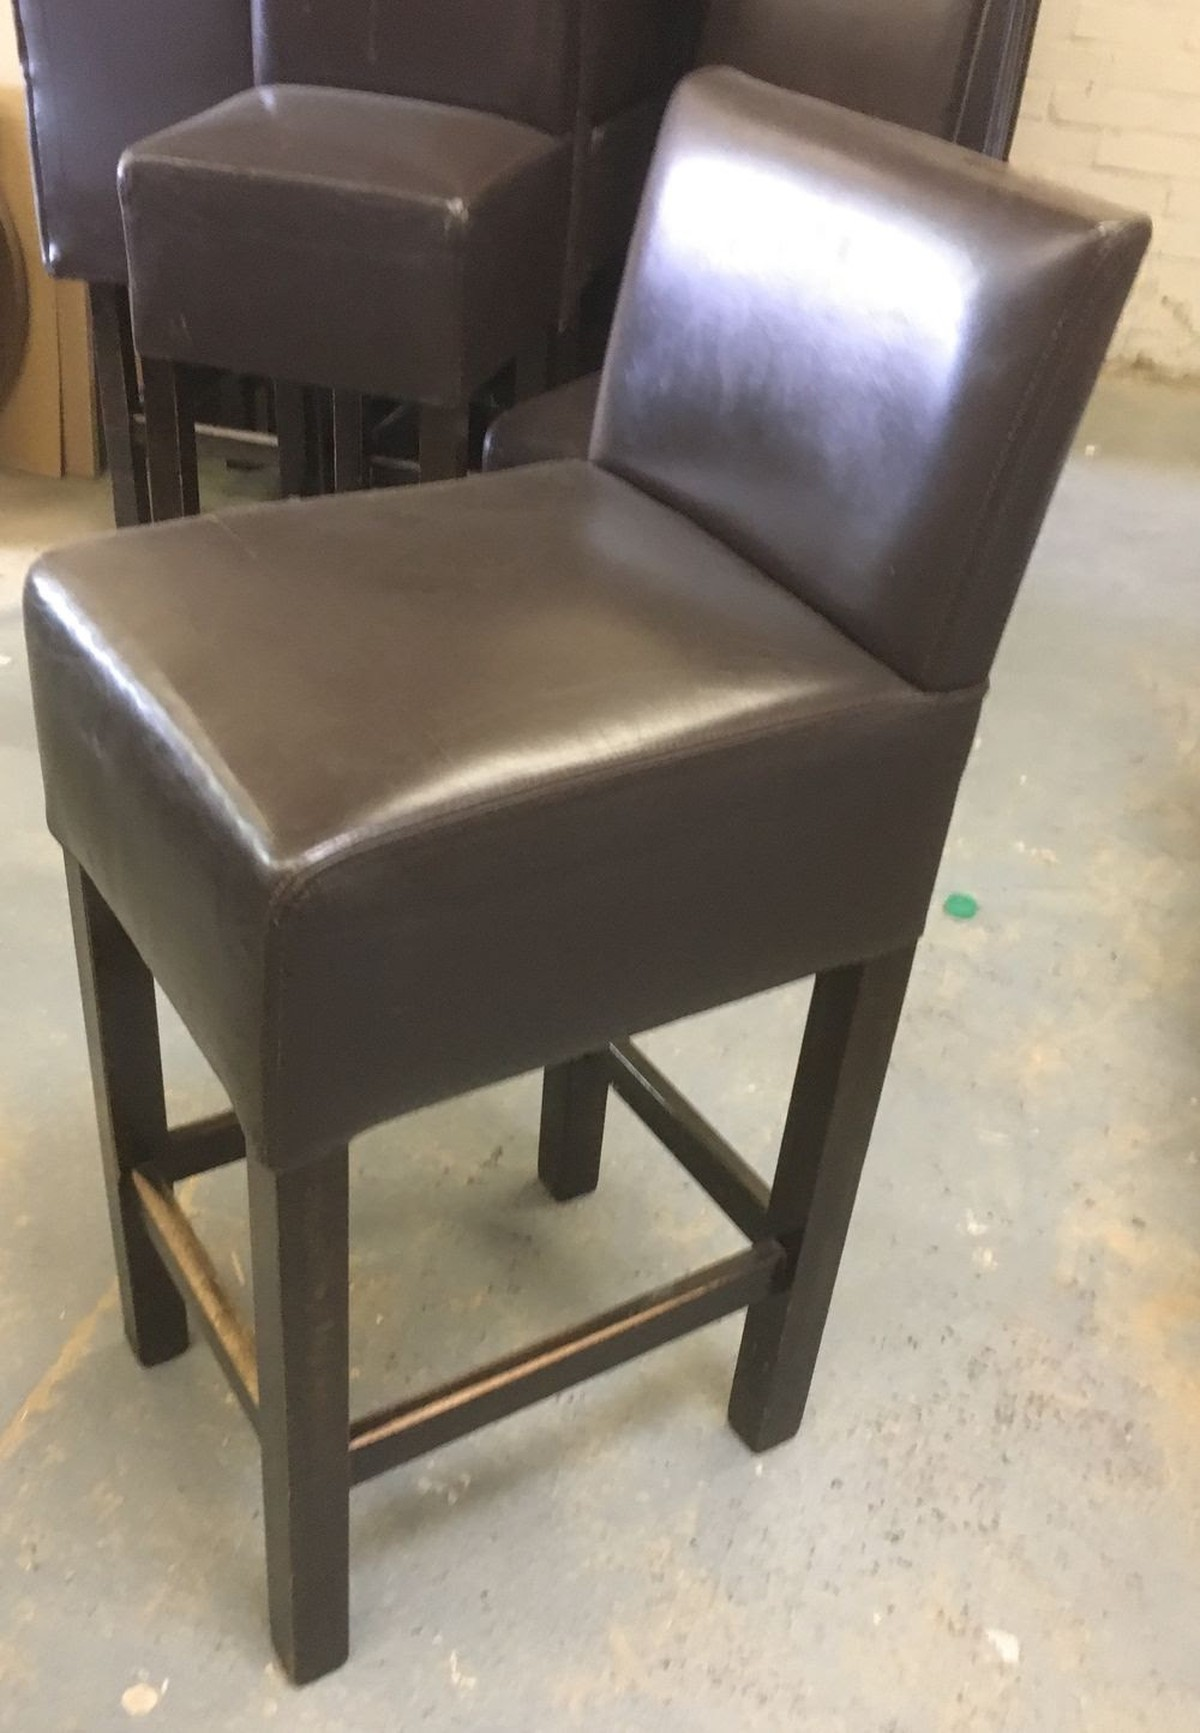 High Back Stools Secondhand Pub Equipment Bar Stools 20x Leather High